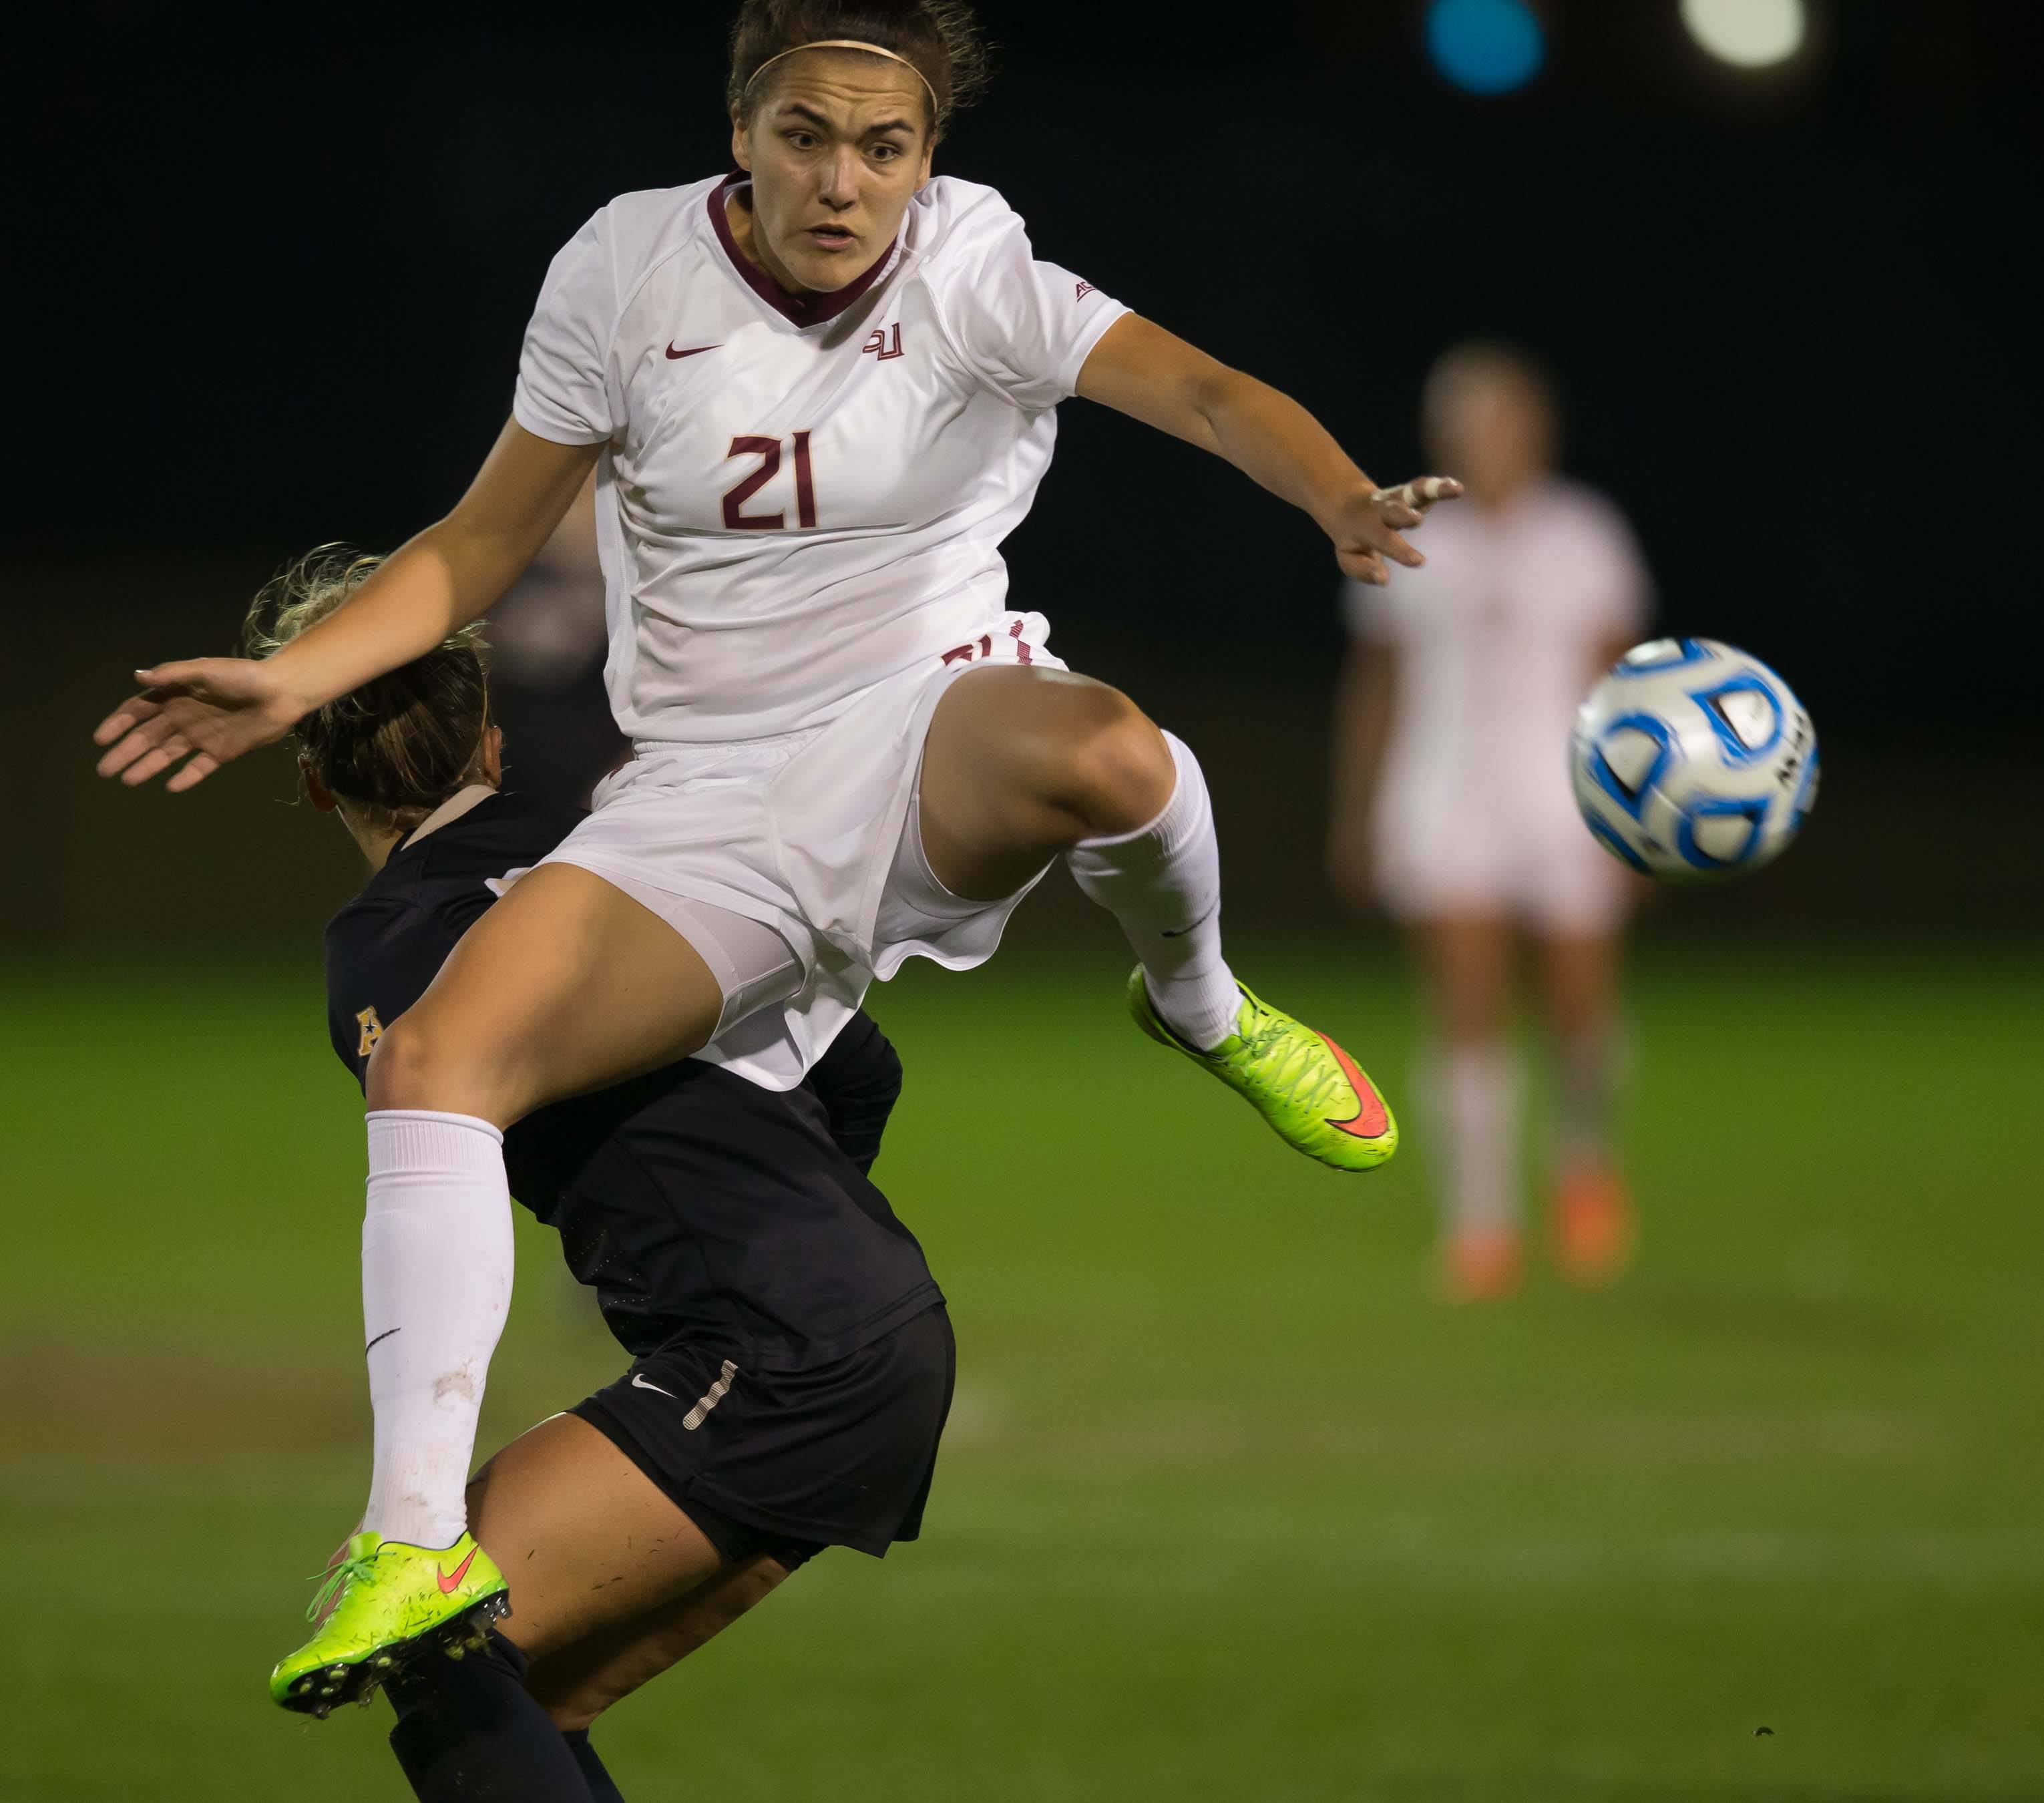 Florida State vs UCF – NCAA Women's Soccer Championship Third Round